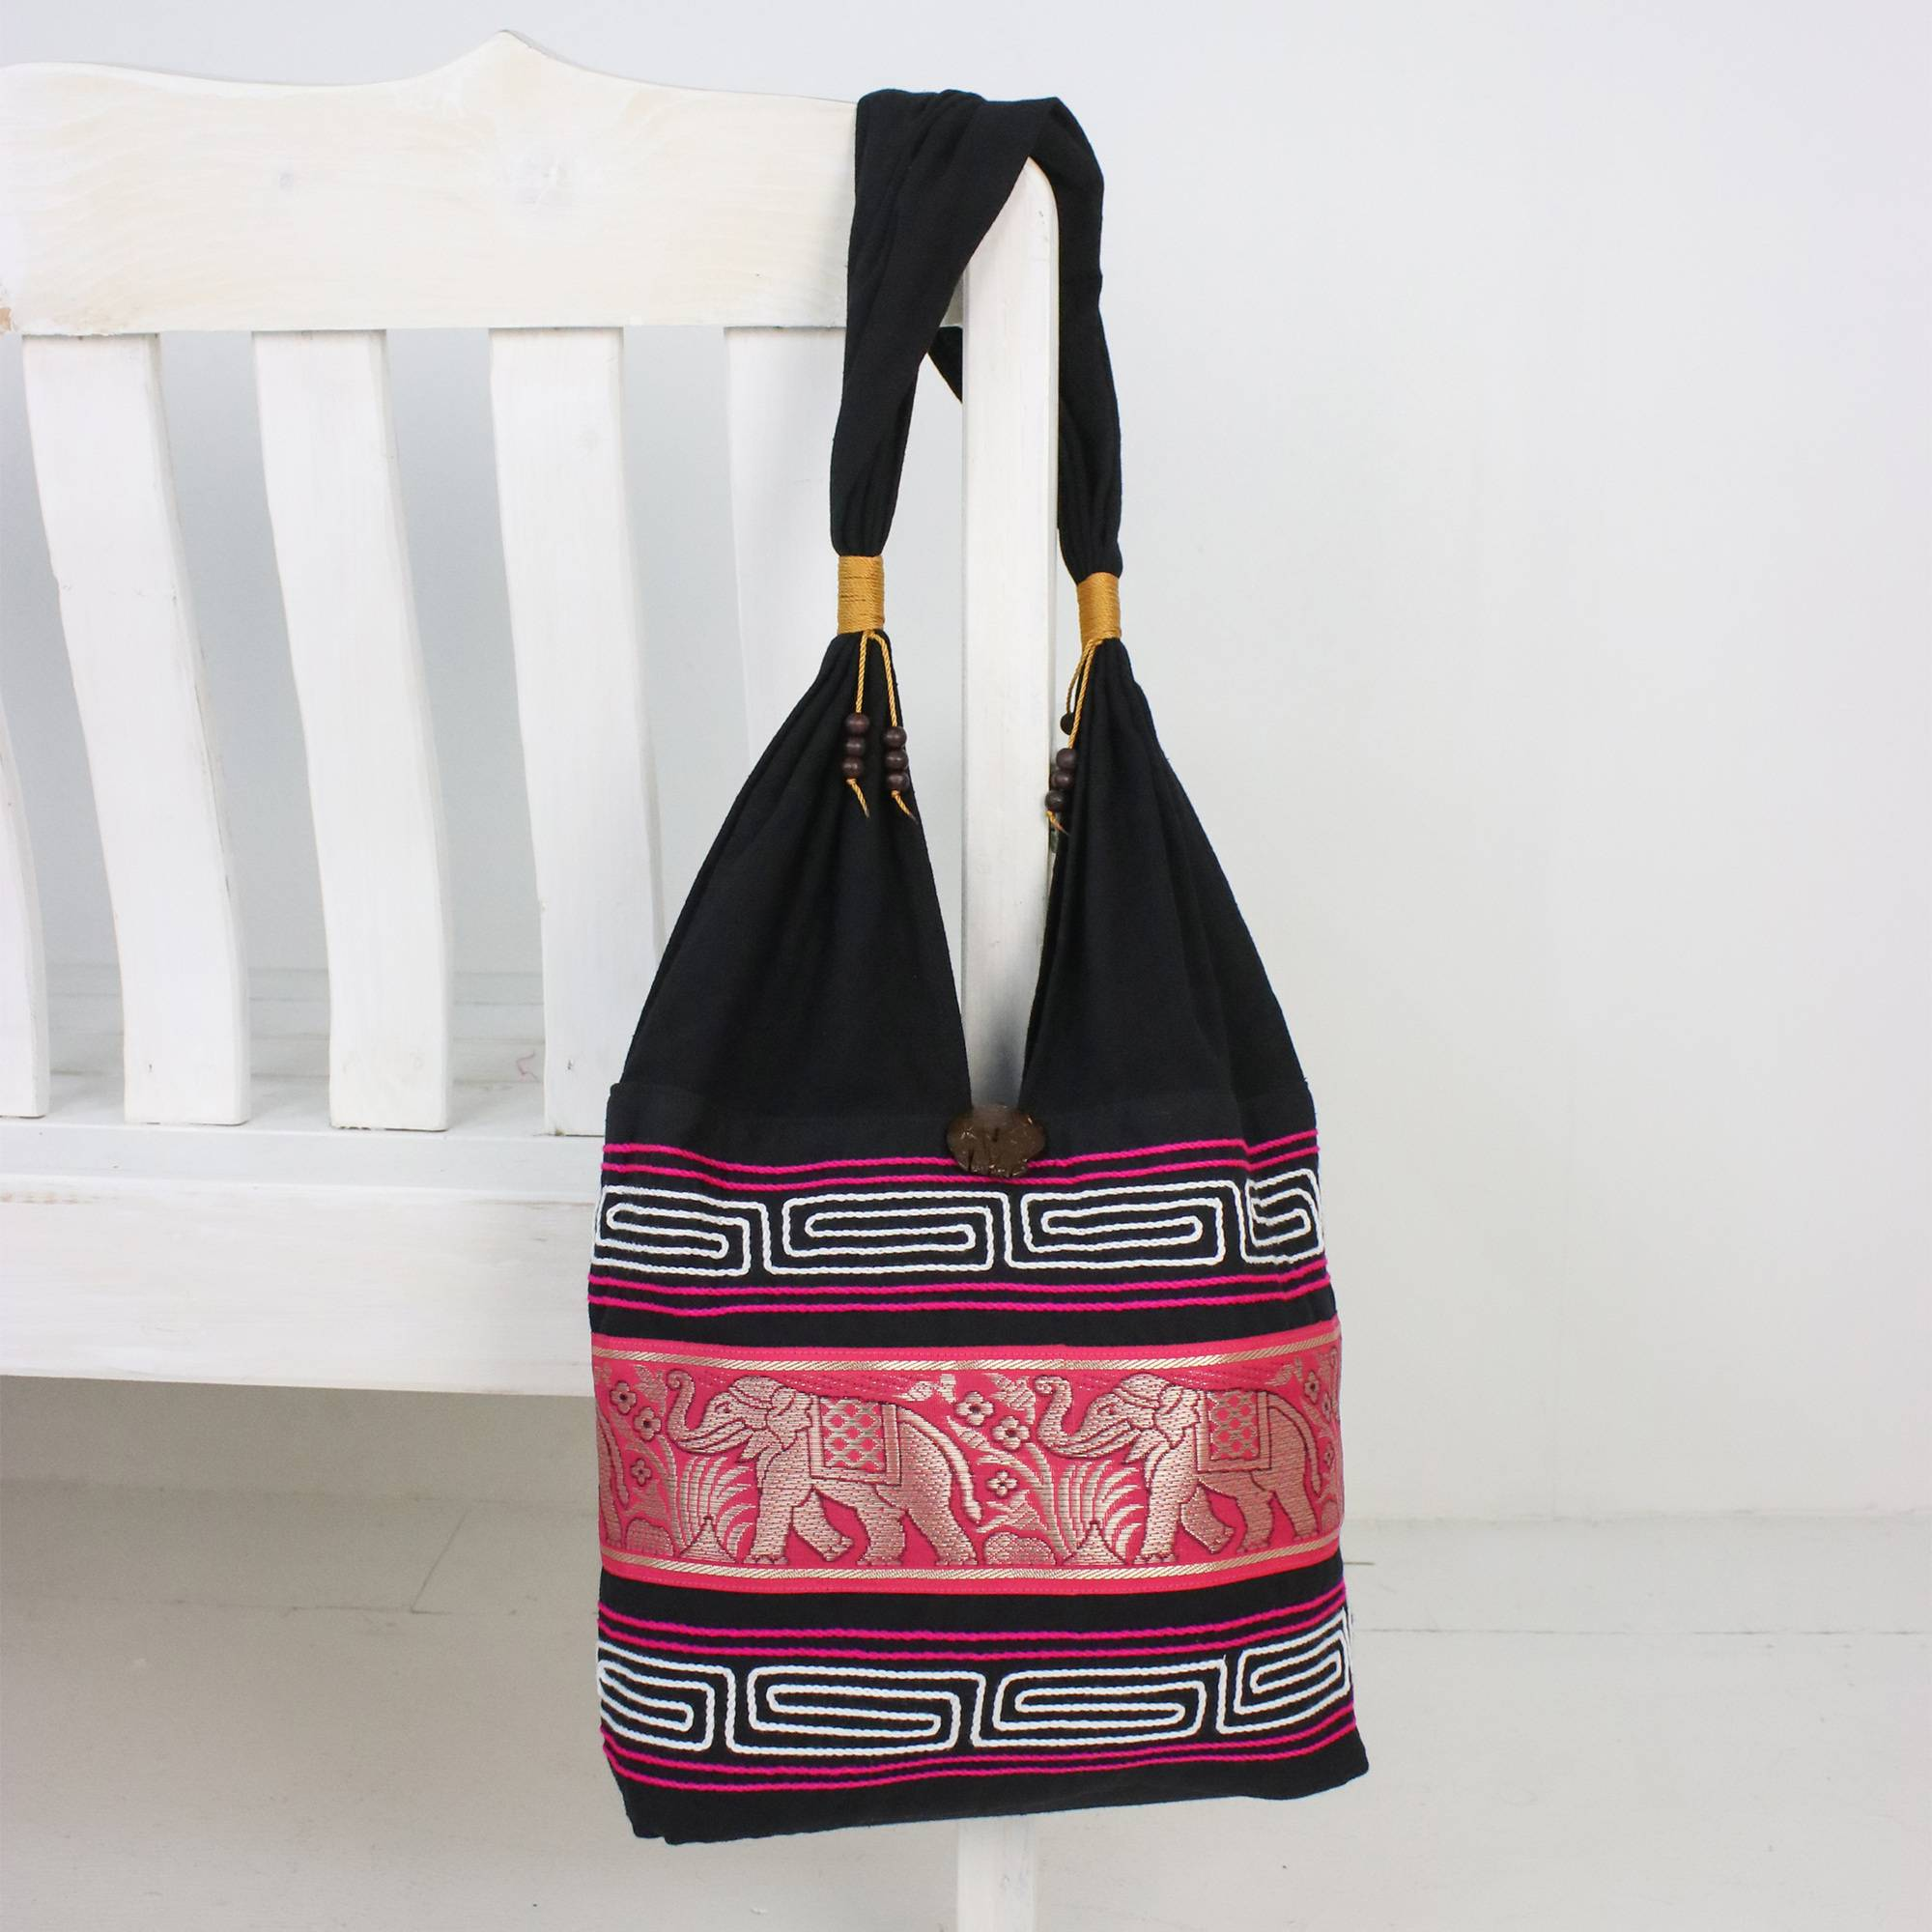 Elephant Cotton Blend Shoulder Bag In Ruby From Thailand Thai Elephants